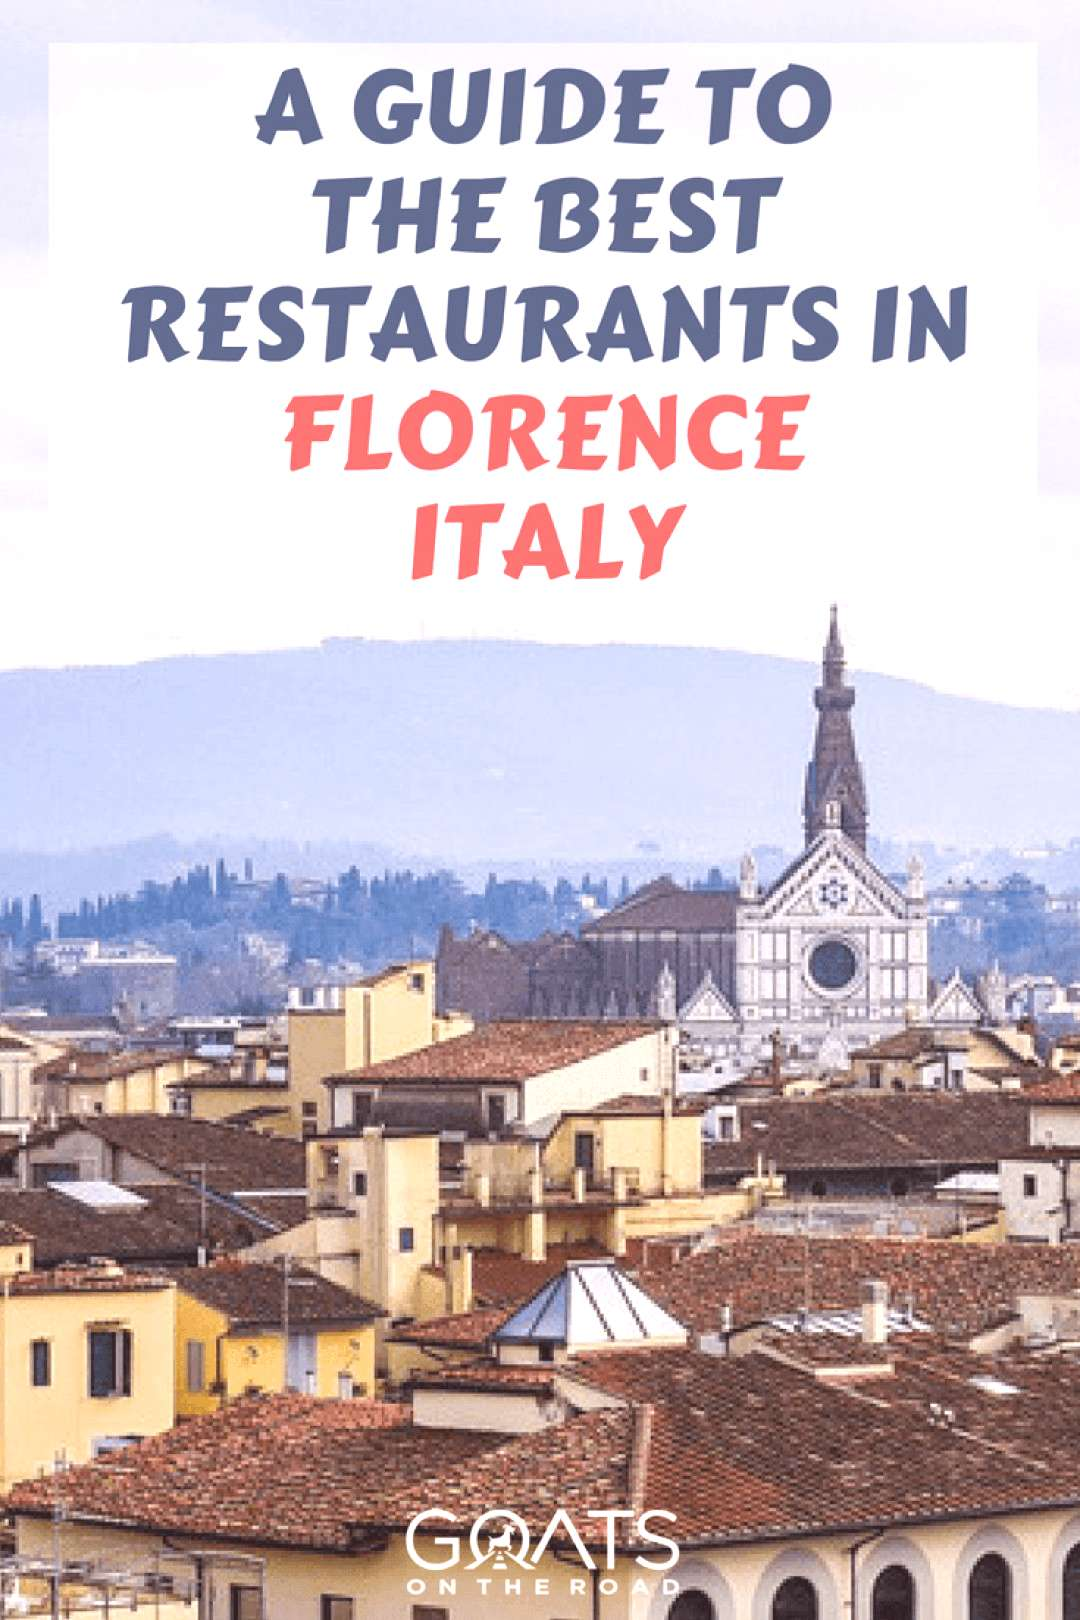 Top 13 Best Restaurants in Florence Italy - Goats On The Road -  -